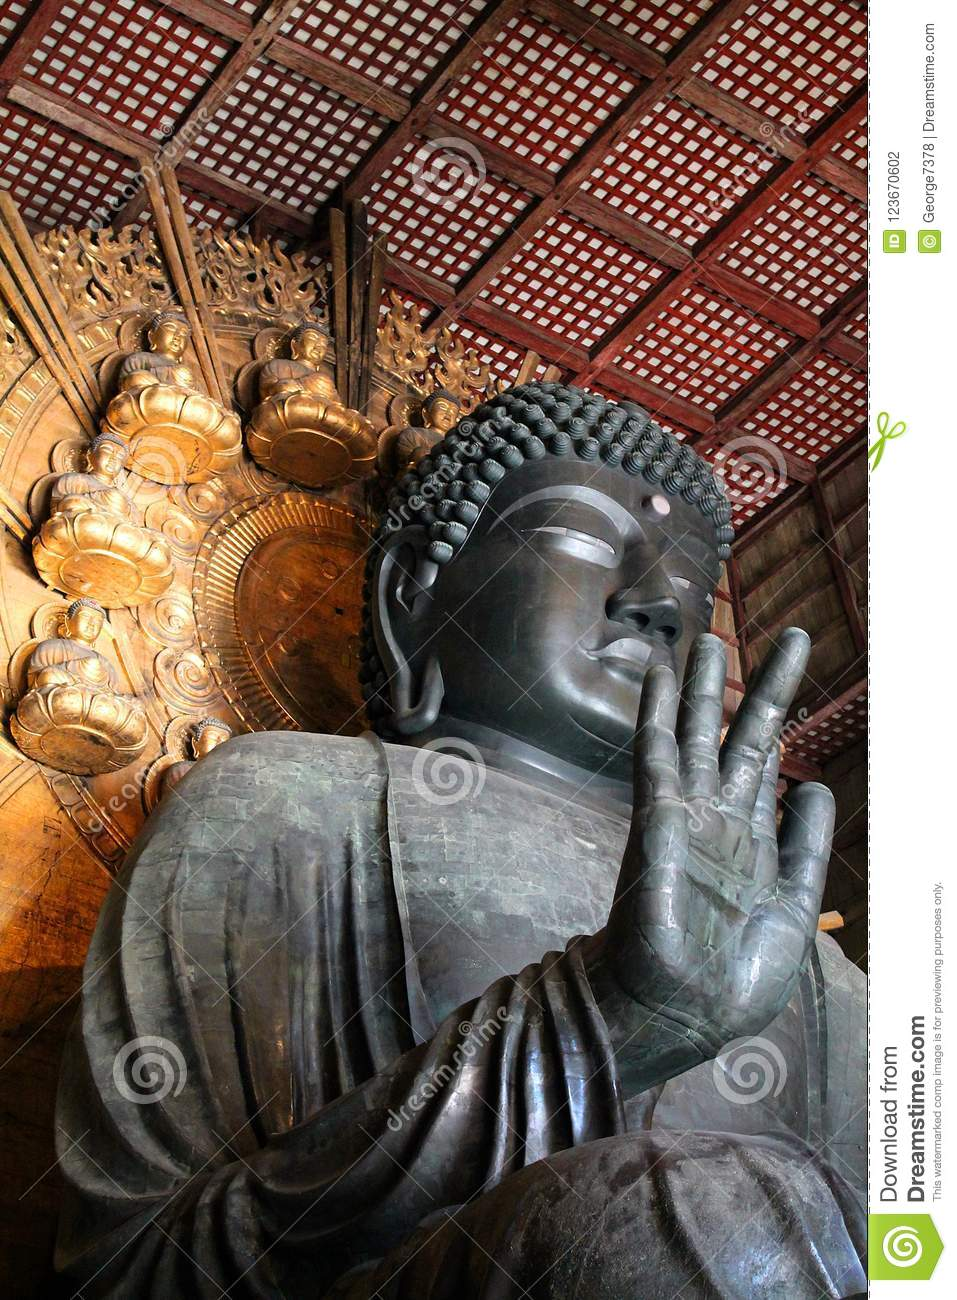 a6466f9c4d A tall metal Buddha figure sits with its right hand raised, palm pointing  forwards and middle finger slightly extended. The statue is inside the  wooden ...